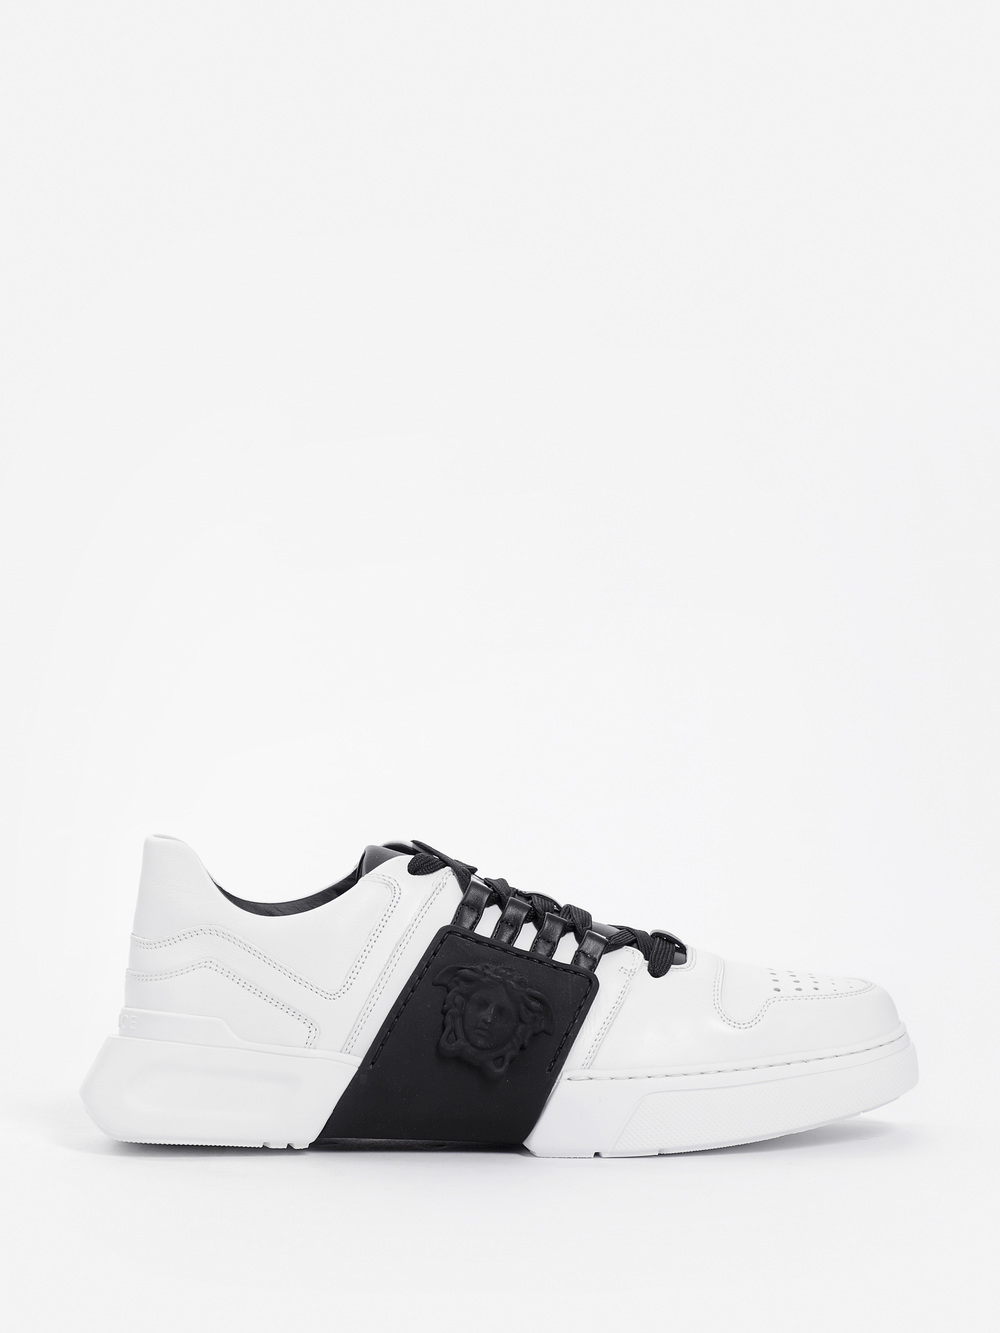 Bicolor Laced Sneakers In Leather, Runway Piece